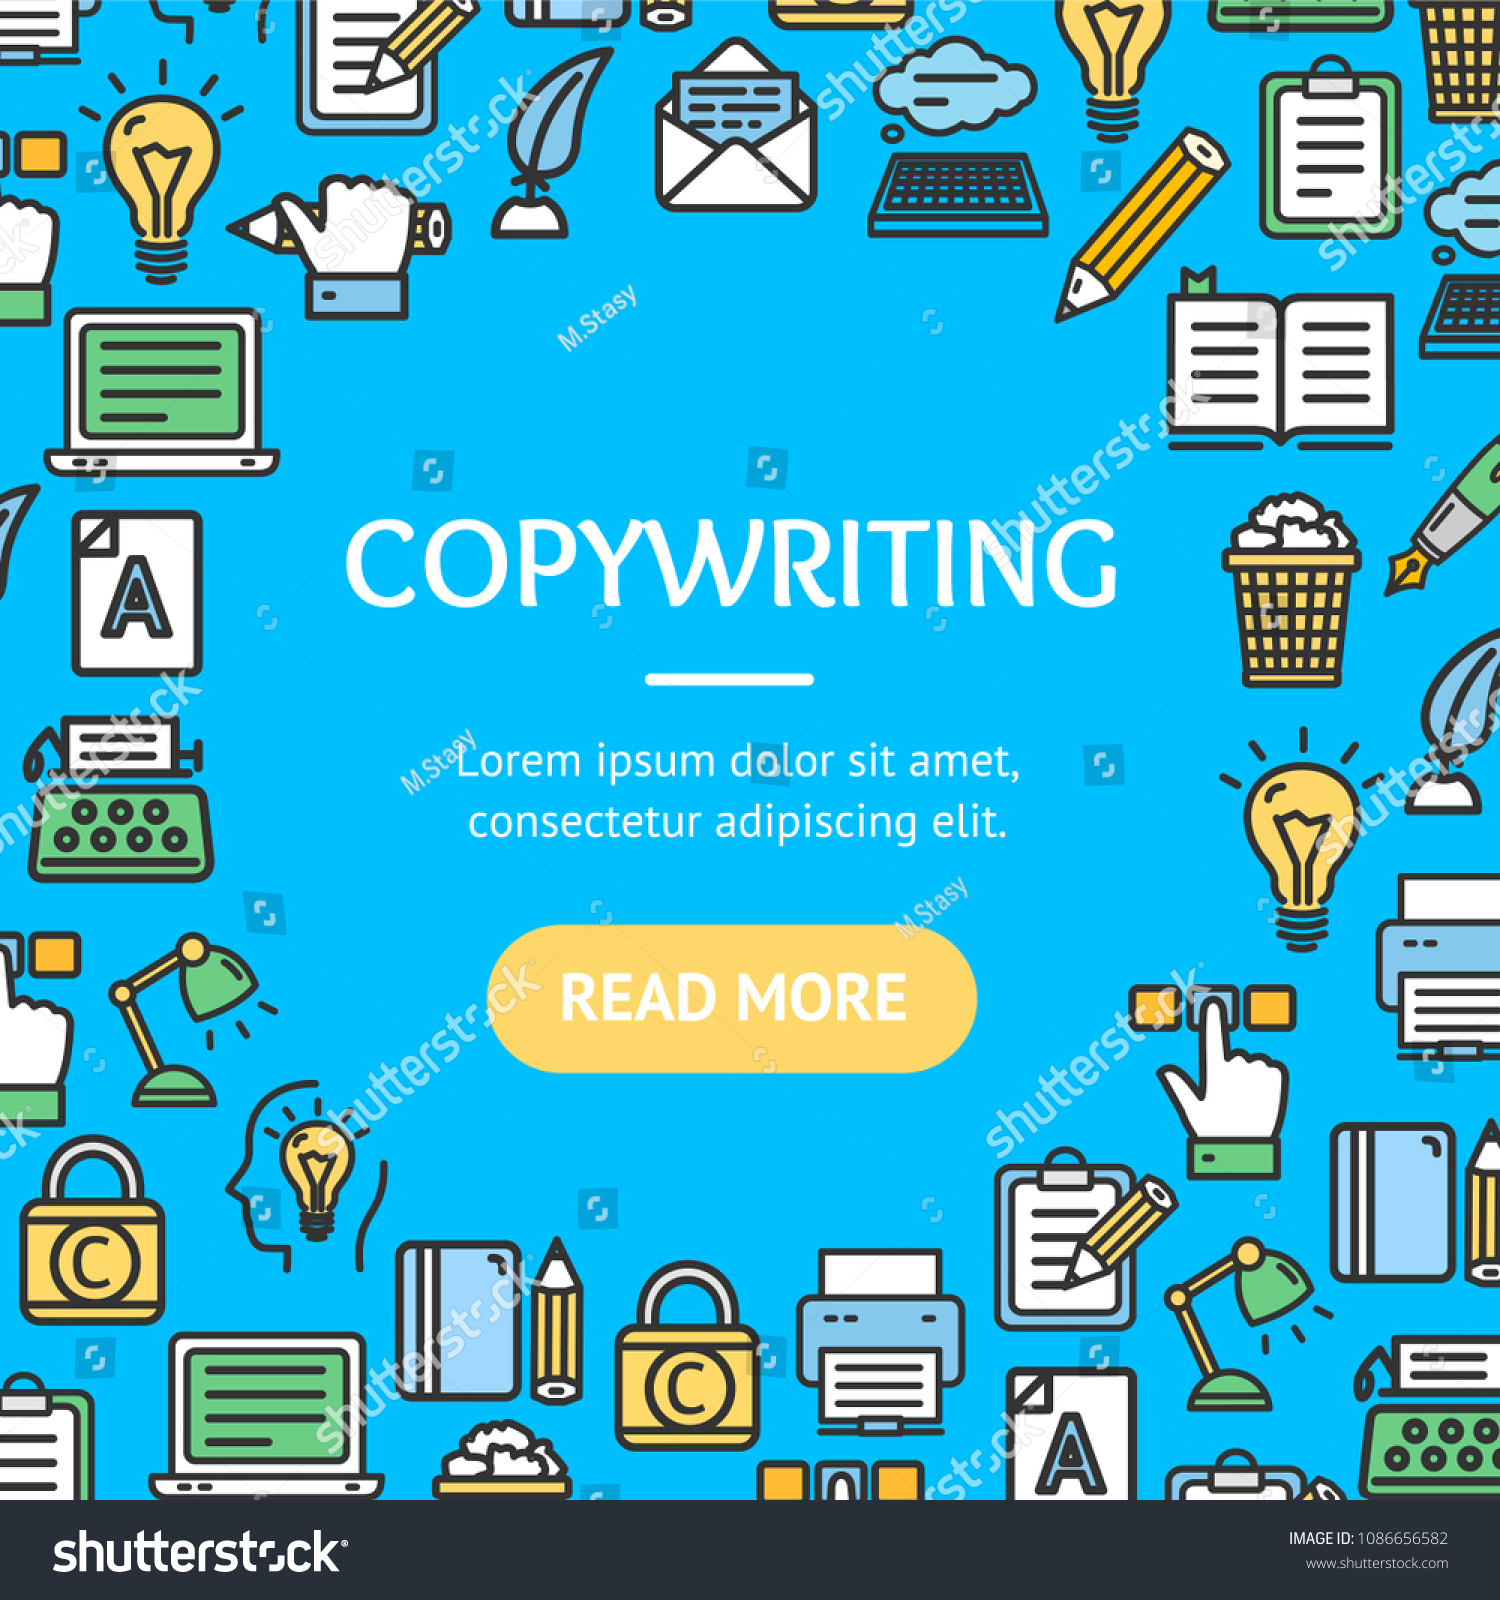 Writer Copywriting Signs Round Design Template Stock Photo (Photo ...